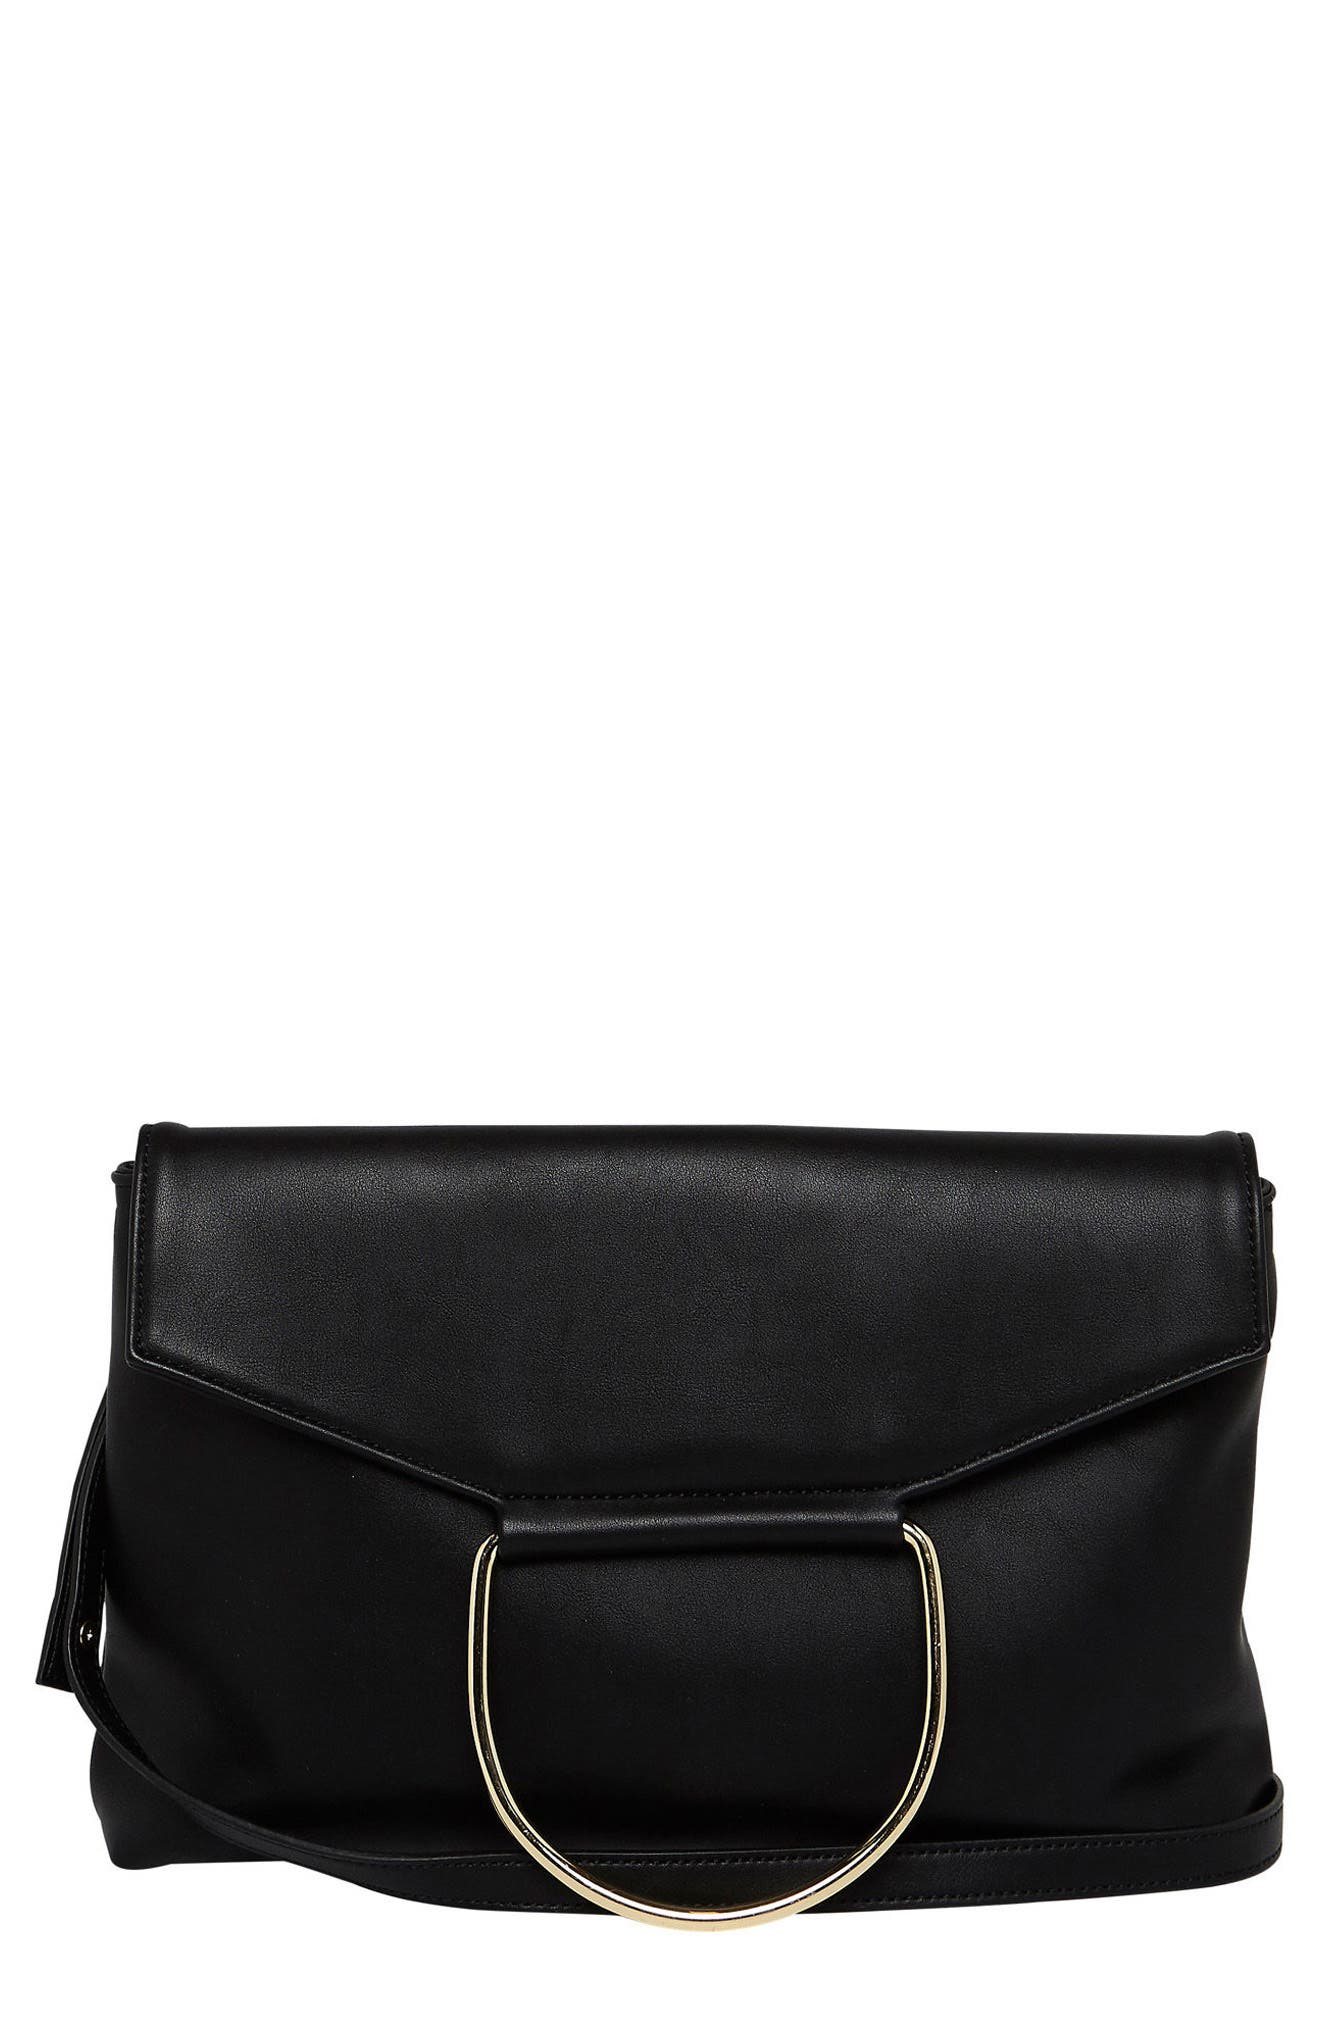 On Your Radar Vegan Leather Foldover Bag,                         Main,                         color, 001